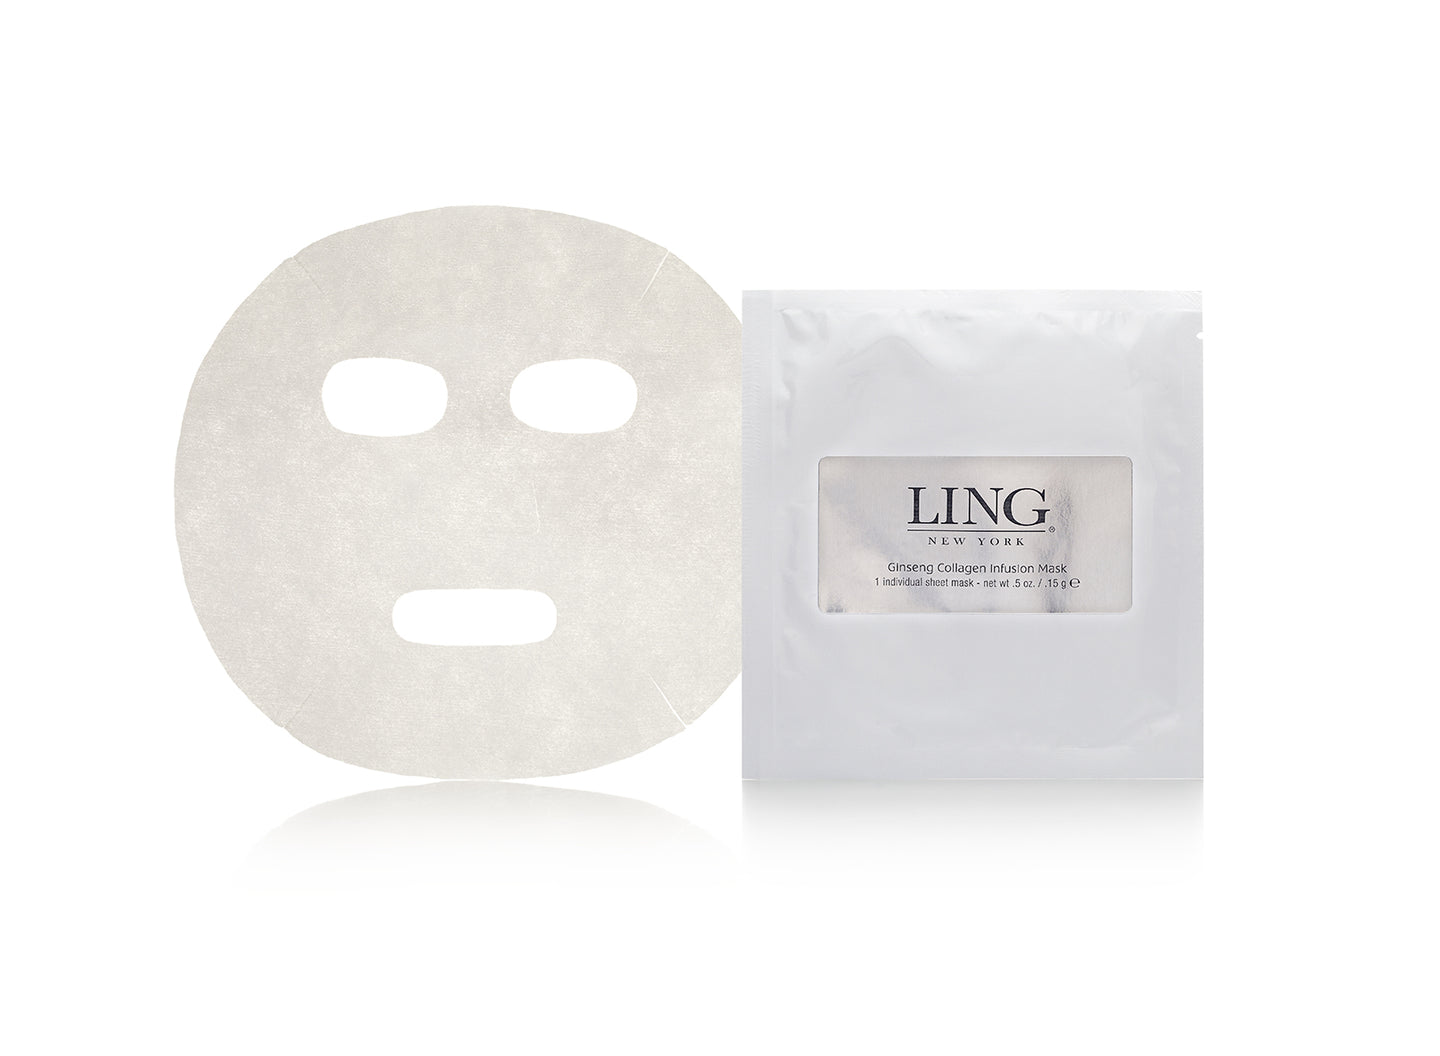 Ginseng Collagen Infusion Mask